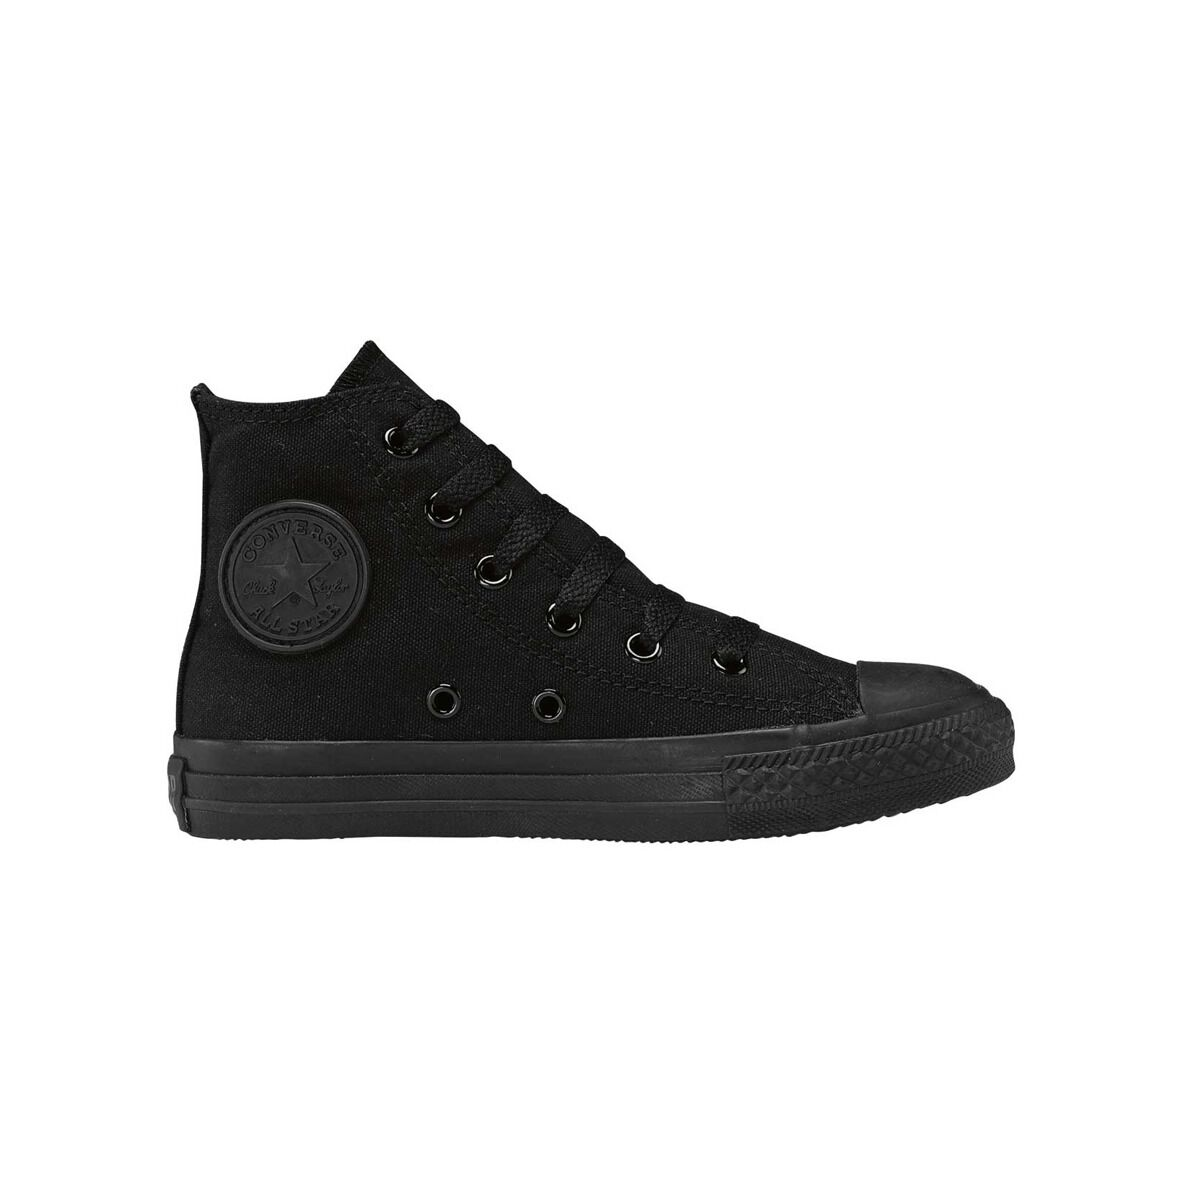 Converse Chuck Taylor All Star Classic High Top Kids Shoes